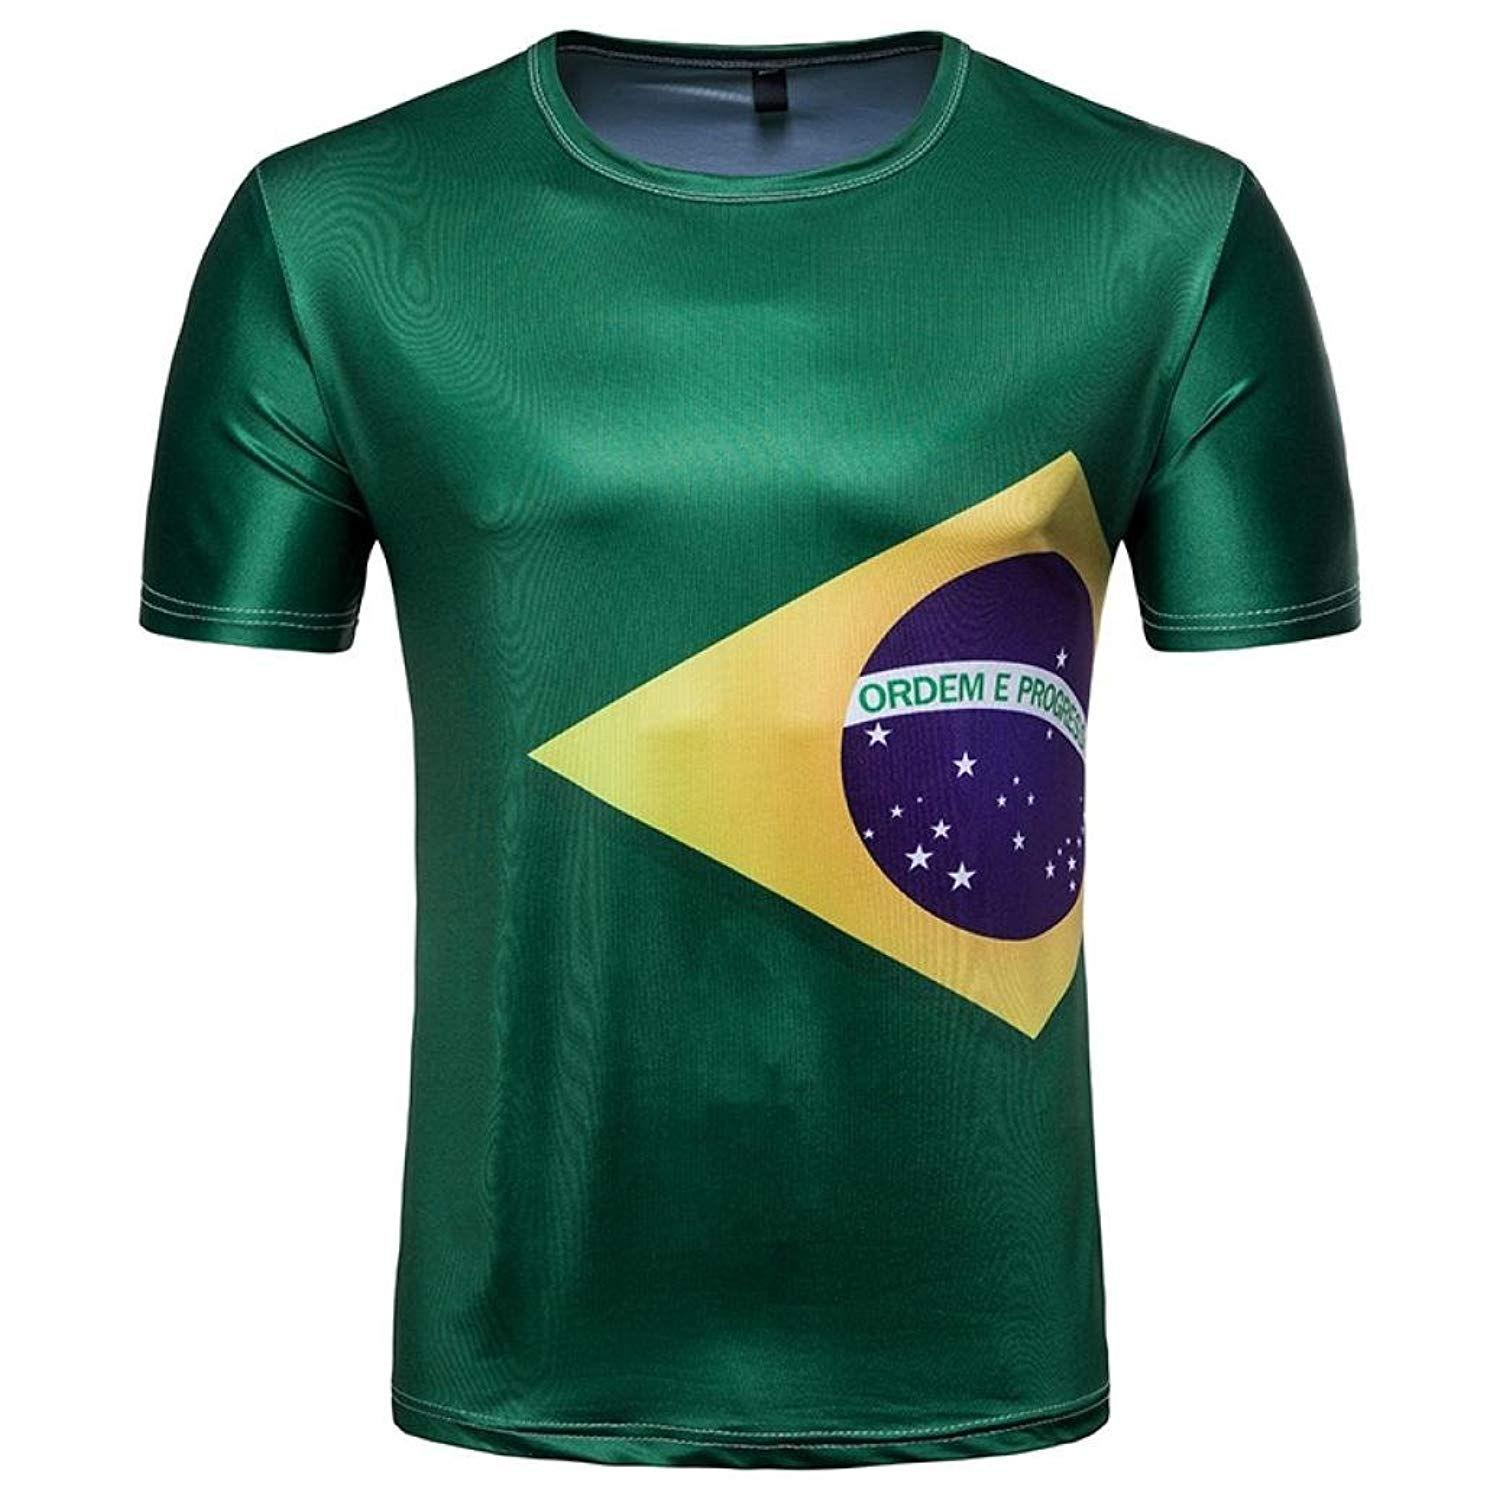 PeiZe World Cup Men Tops T-Shirts 2018, Mens Football 3D Short Sleeve Summer Tee Top Blouse